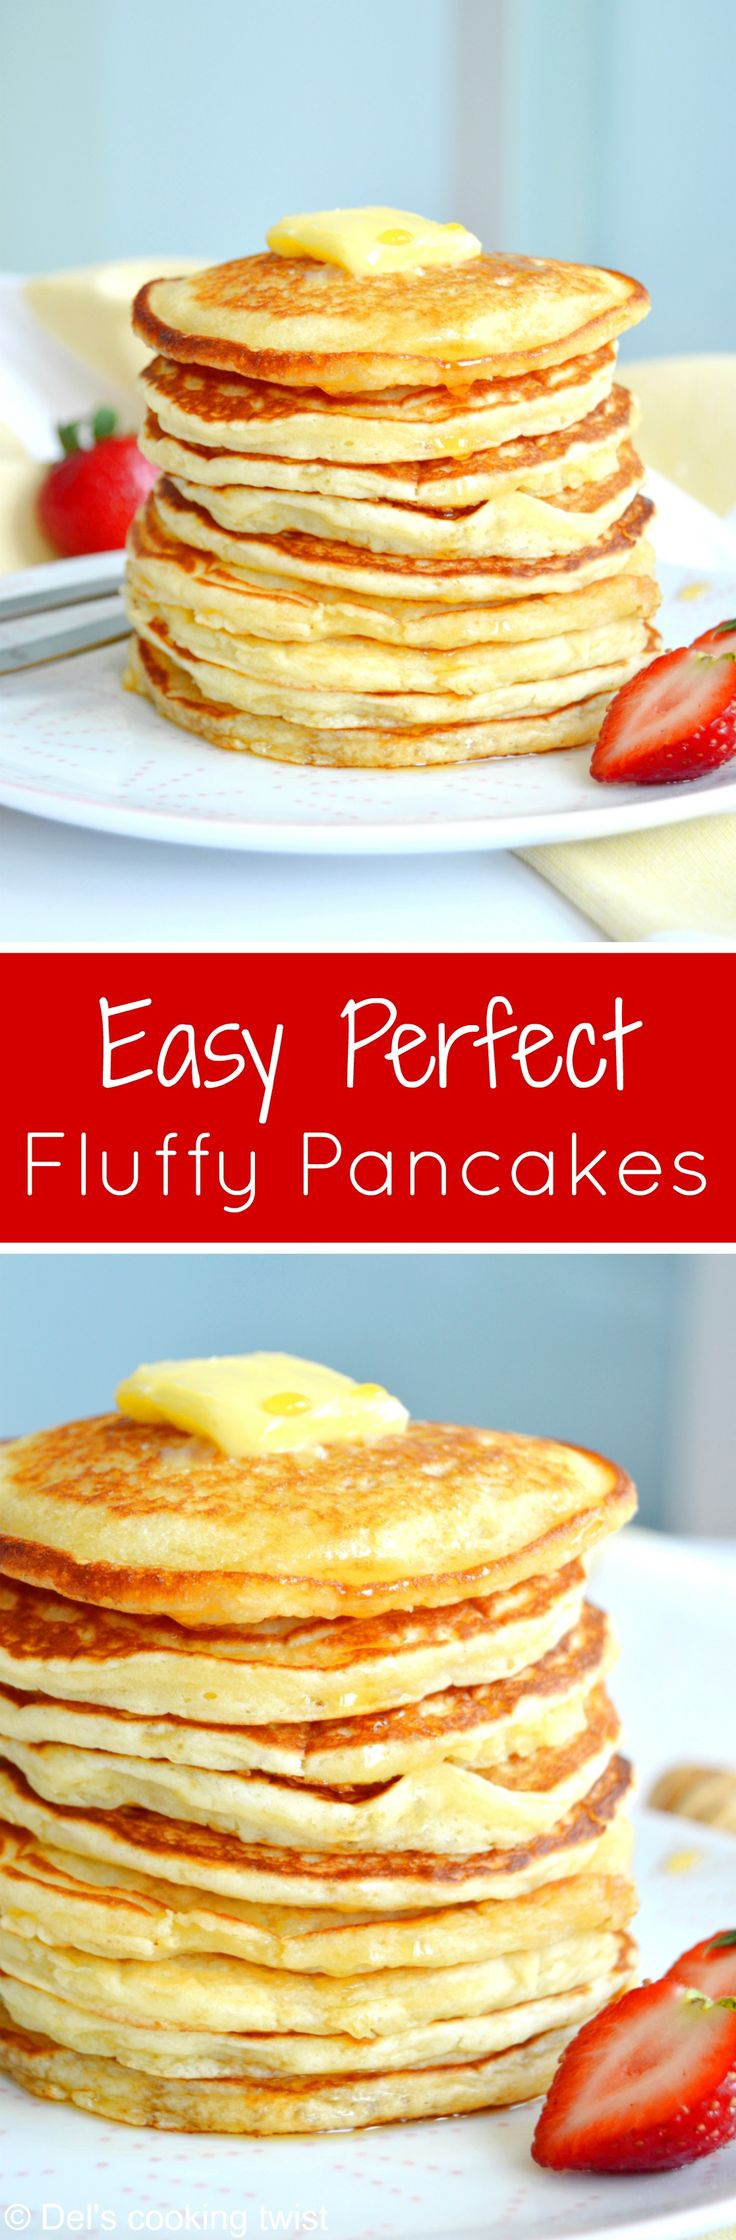 Easy Perfect Fluffy Pancakes Recipe - (delscookingtwist)